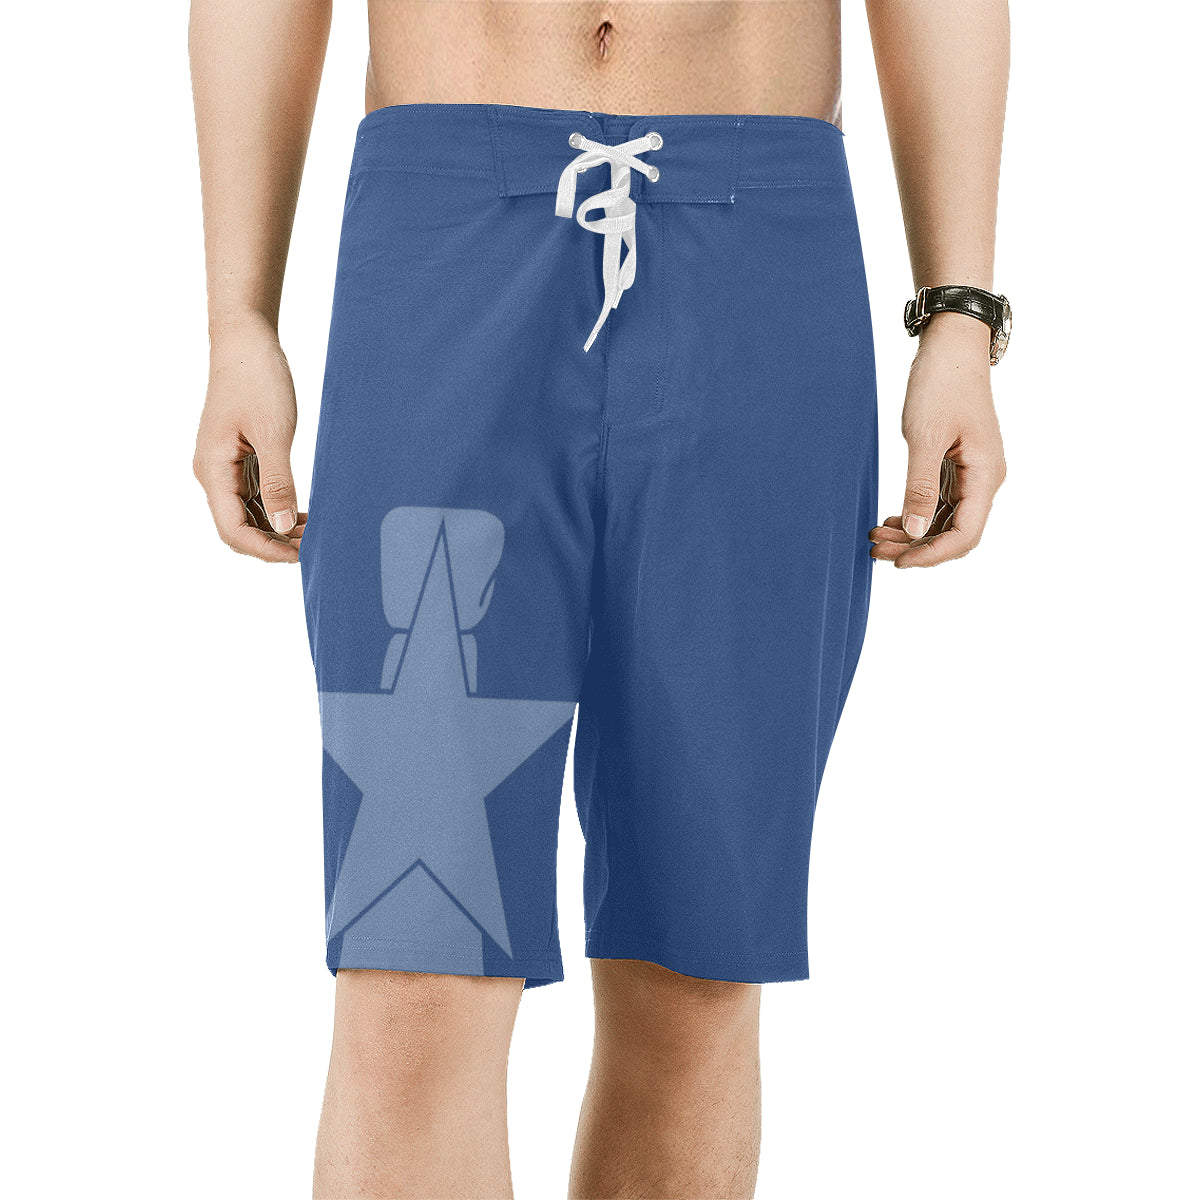 CNMI Seal Saipan Blue Men's All Over Print Board Shorts